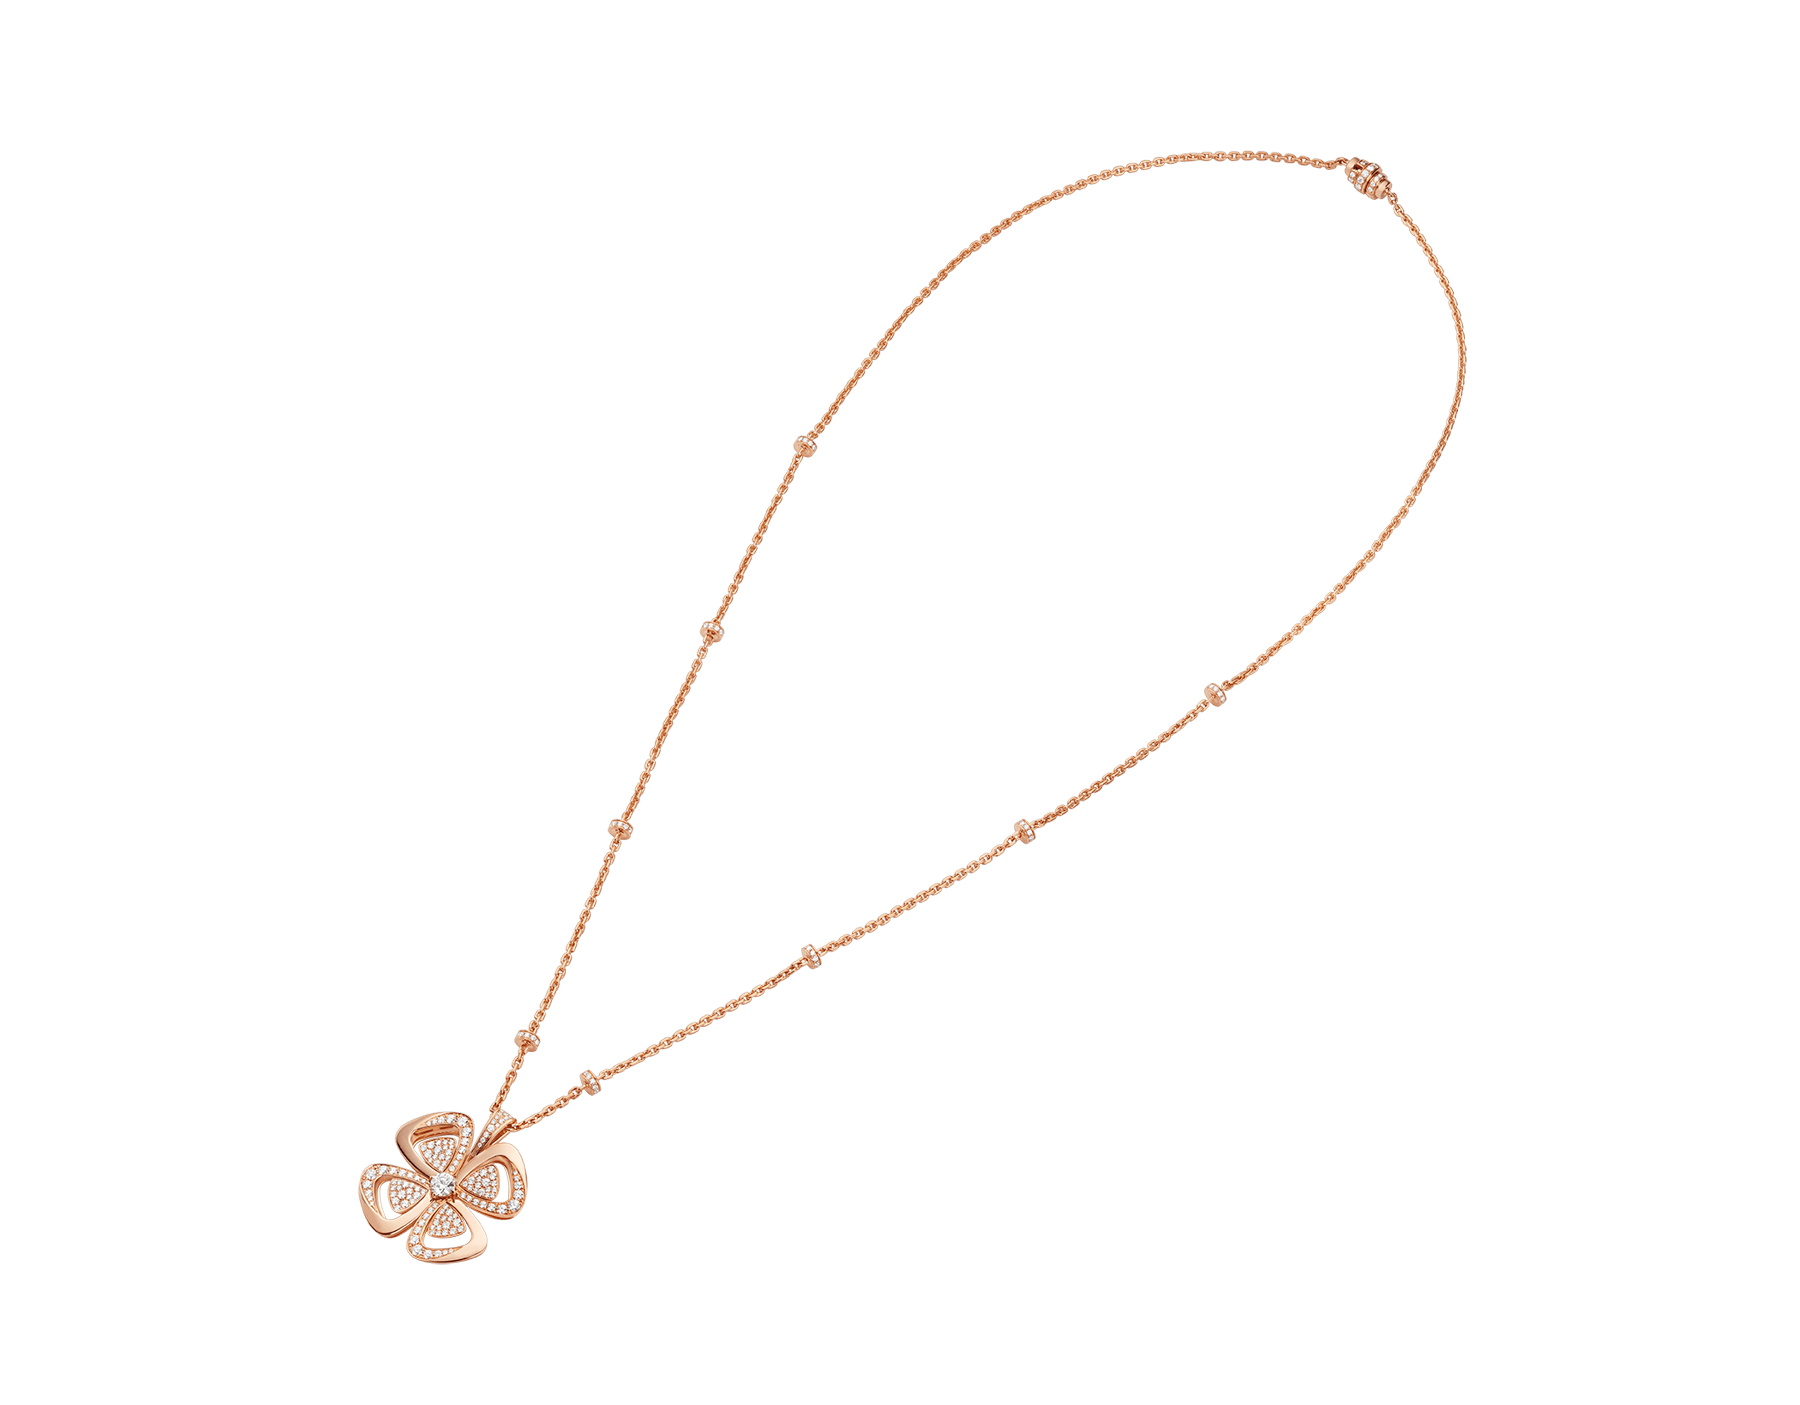 Fiorever 18 kt rose gold necklace set with a central round brilliant-cut diamond and pavé diamonds. 357218 image 2